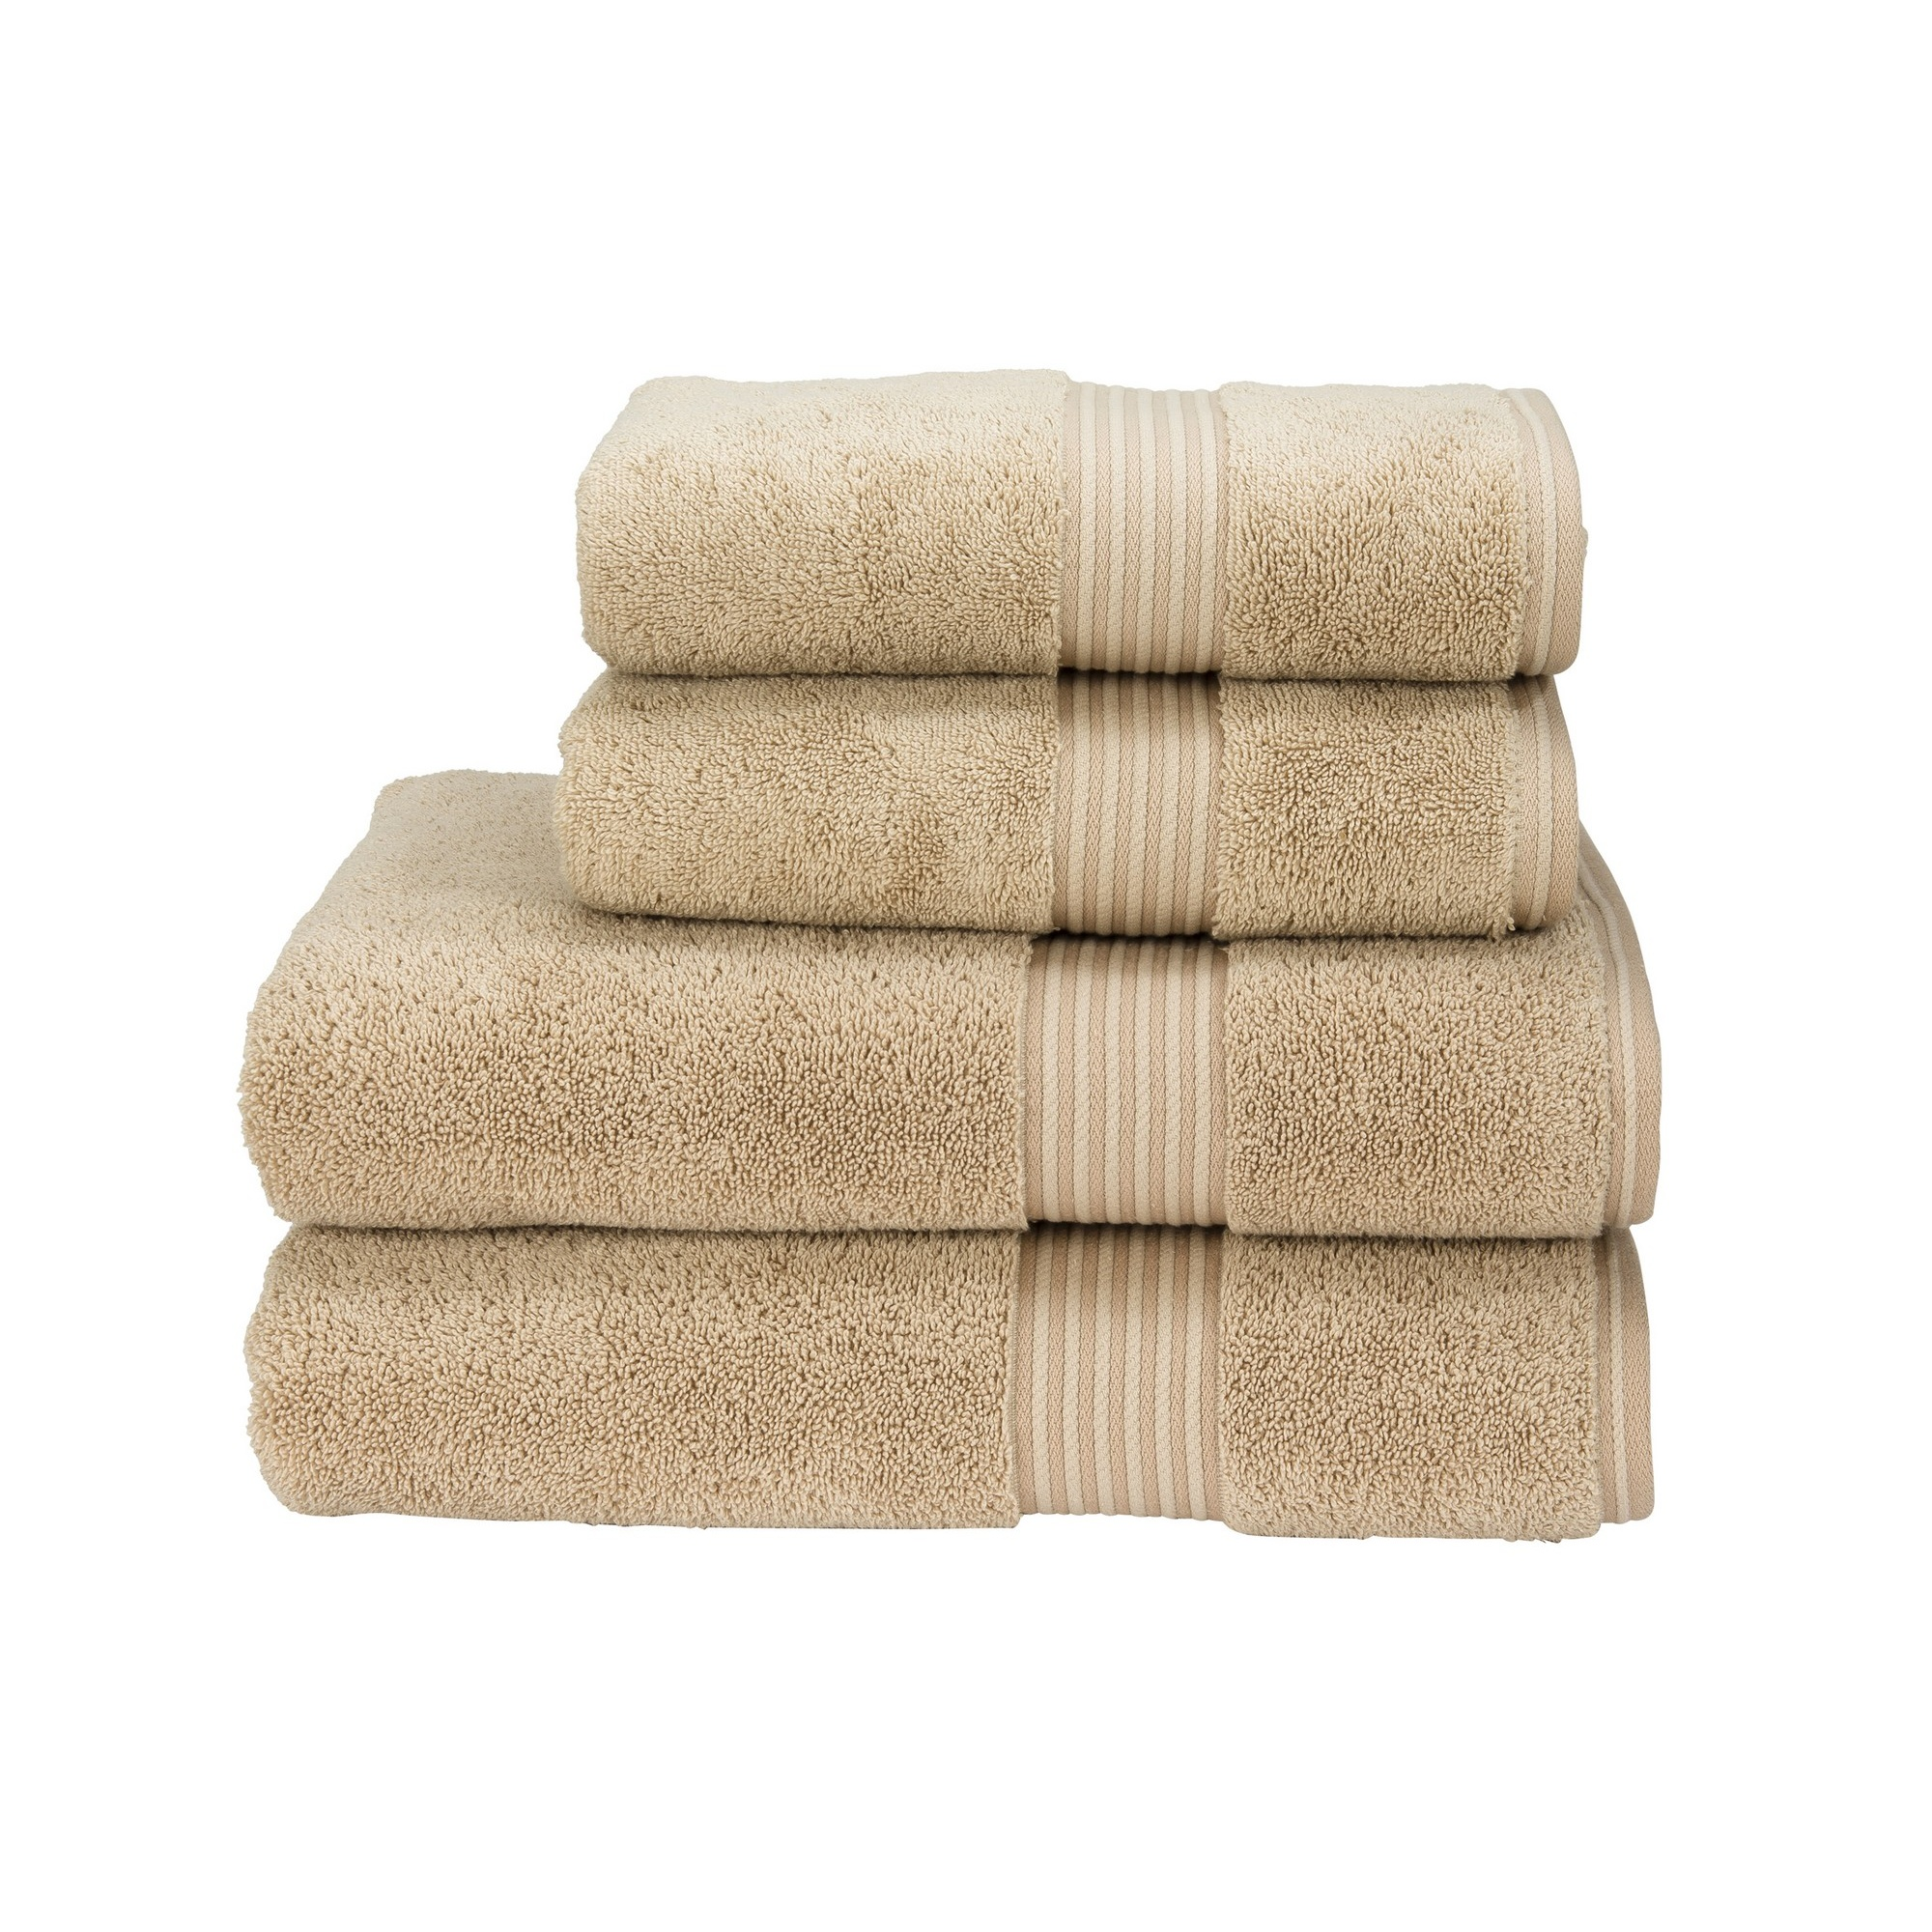 At Wayfair, we want to make sure you find the best home goods when you shop online. You have searched for guest towels for bathroom and this page displays the closest product matches we have for guest towels for bathroom to buy online.